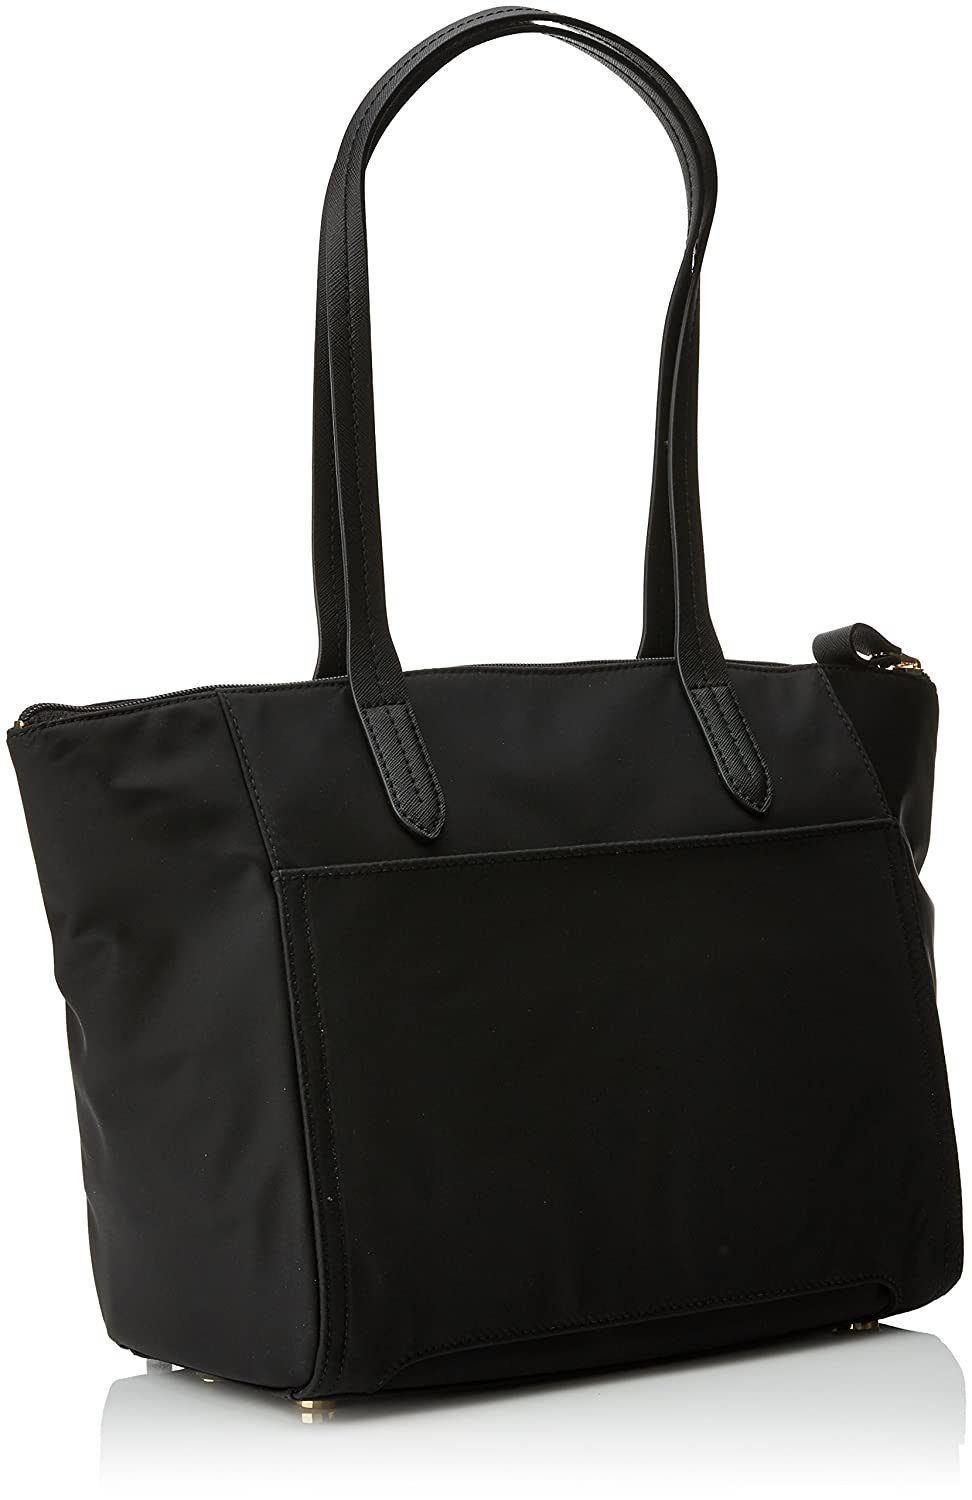 fbede6a13d93 Michael Kors Womens Nylon Kelsey Md Tz Tote Tote Black (Black)   Amazon.co.uk  Shoes   Bags